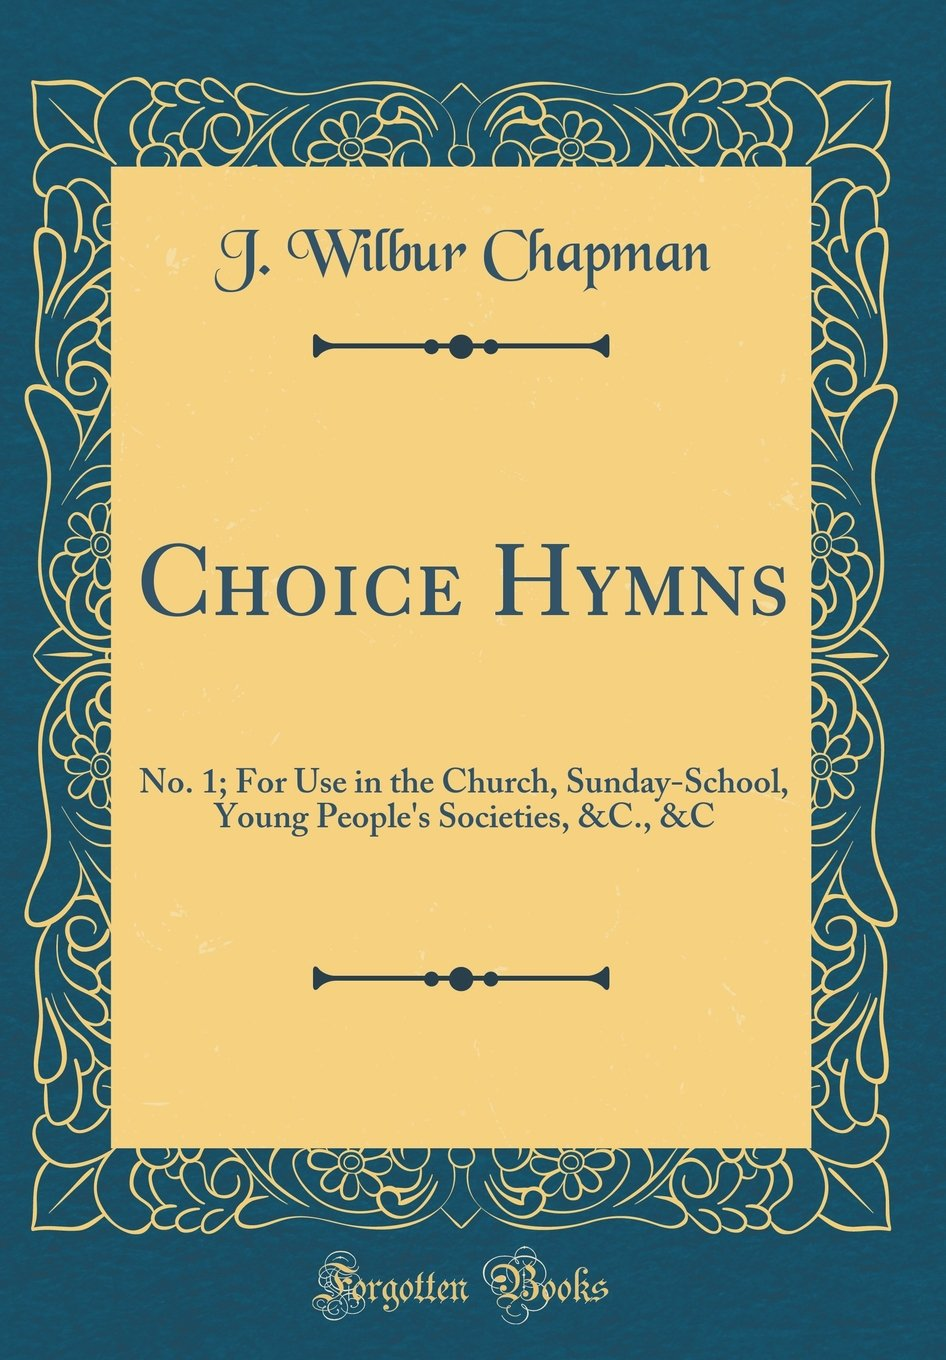 Choice Hymns: No. 1; For Use in the Church, Sunday-School, Young People's Societies, &C., &C (Classic Reprint)